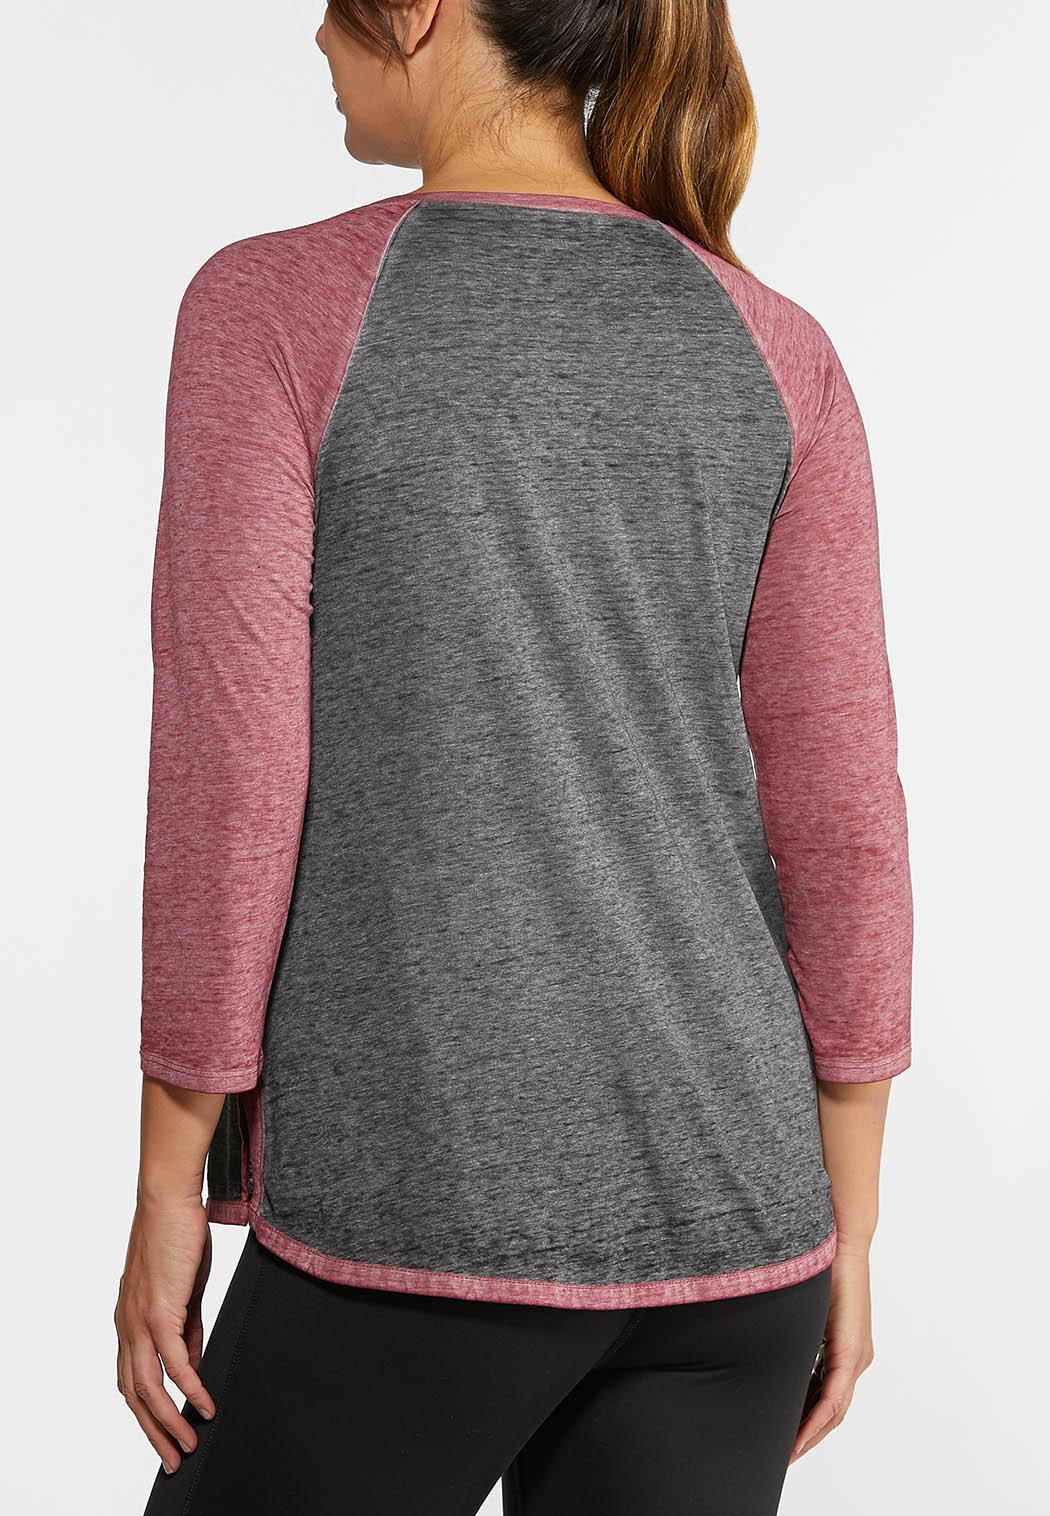 Live Your Passion Baseball Tee (Item #44311384)